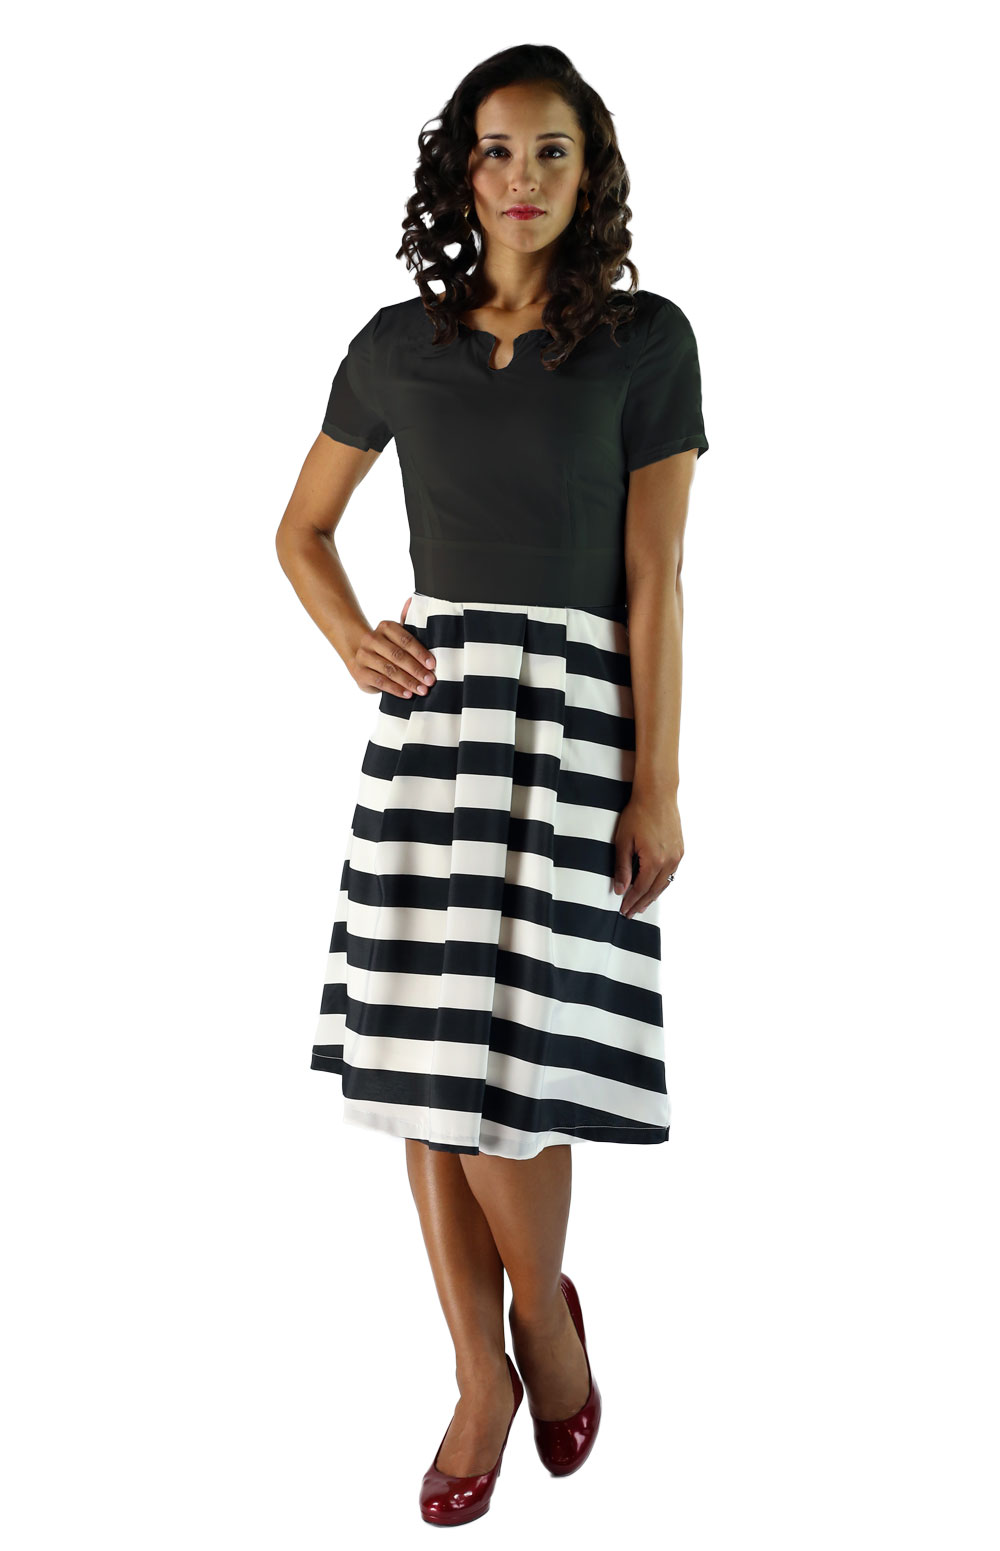 Modest A-line Dress in Black & White Stripes